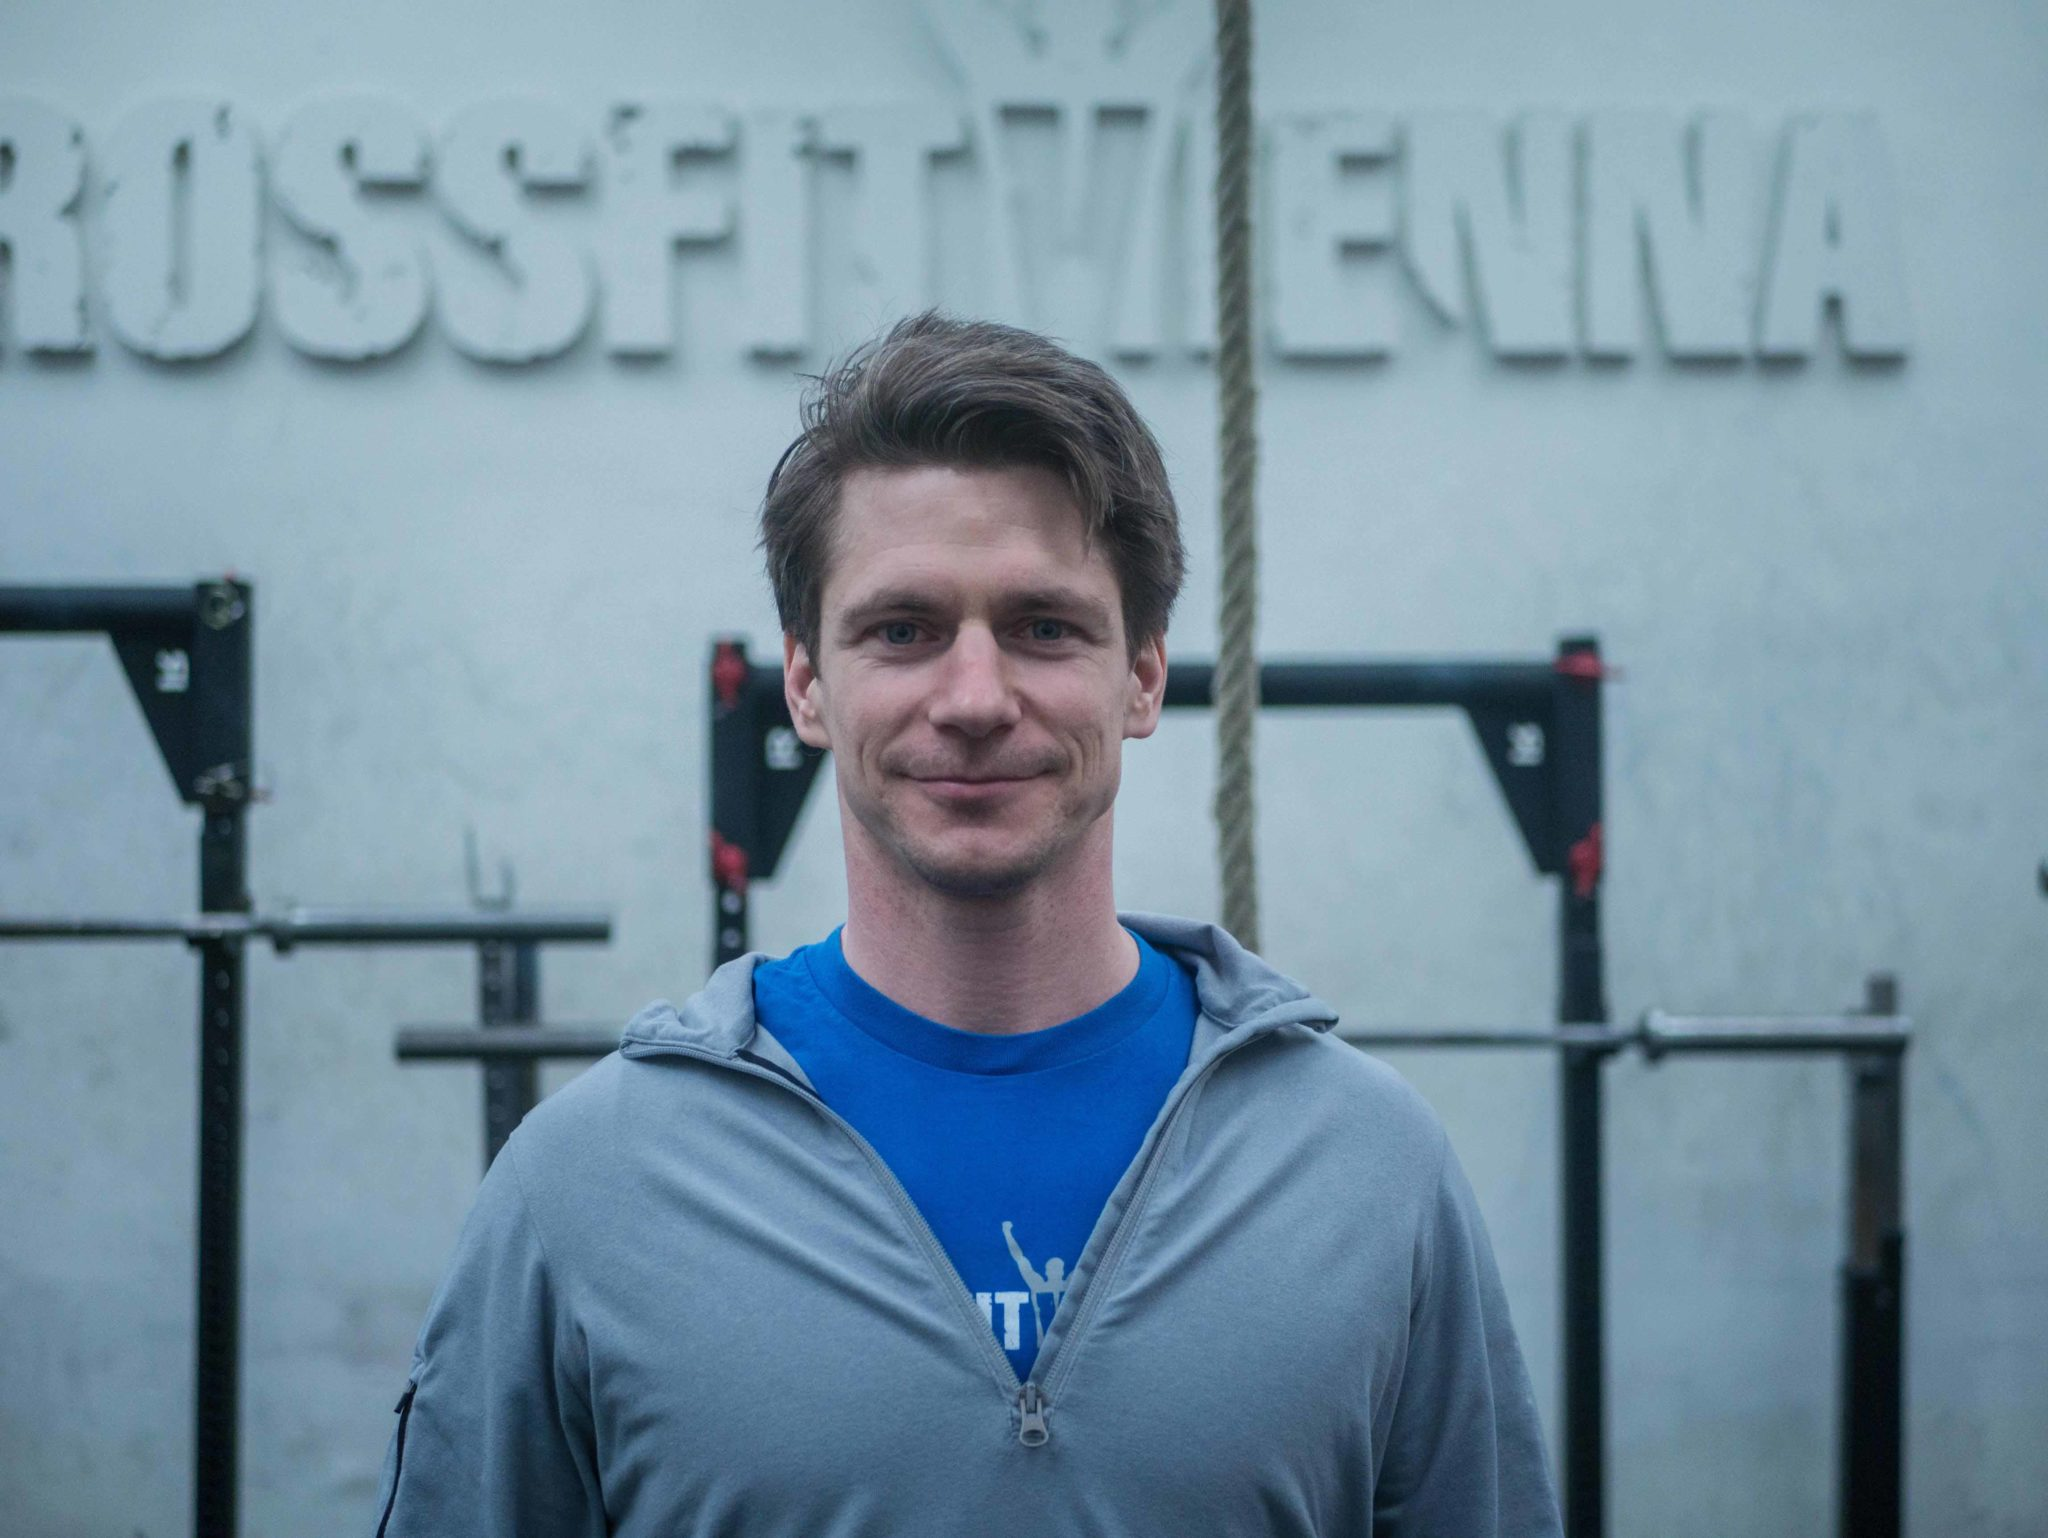 Crossfit Vienna Fitness Software